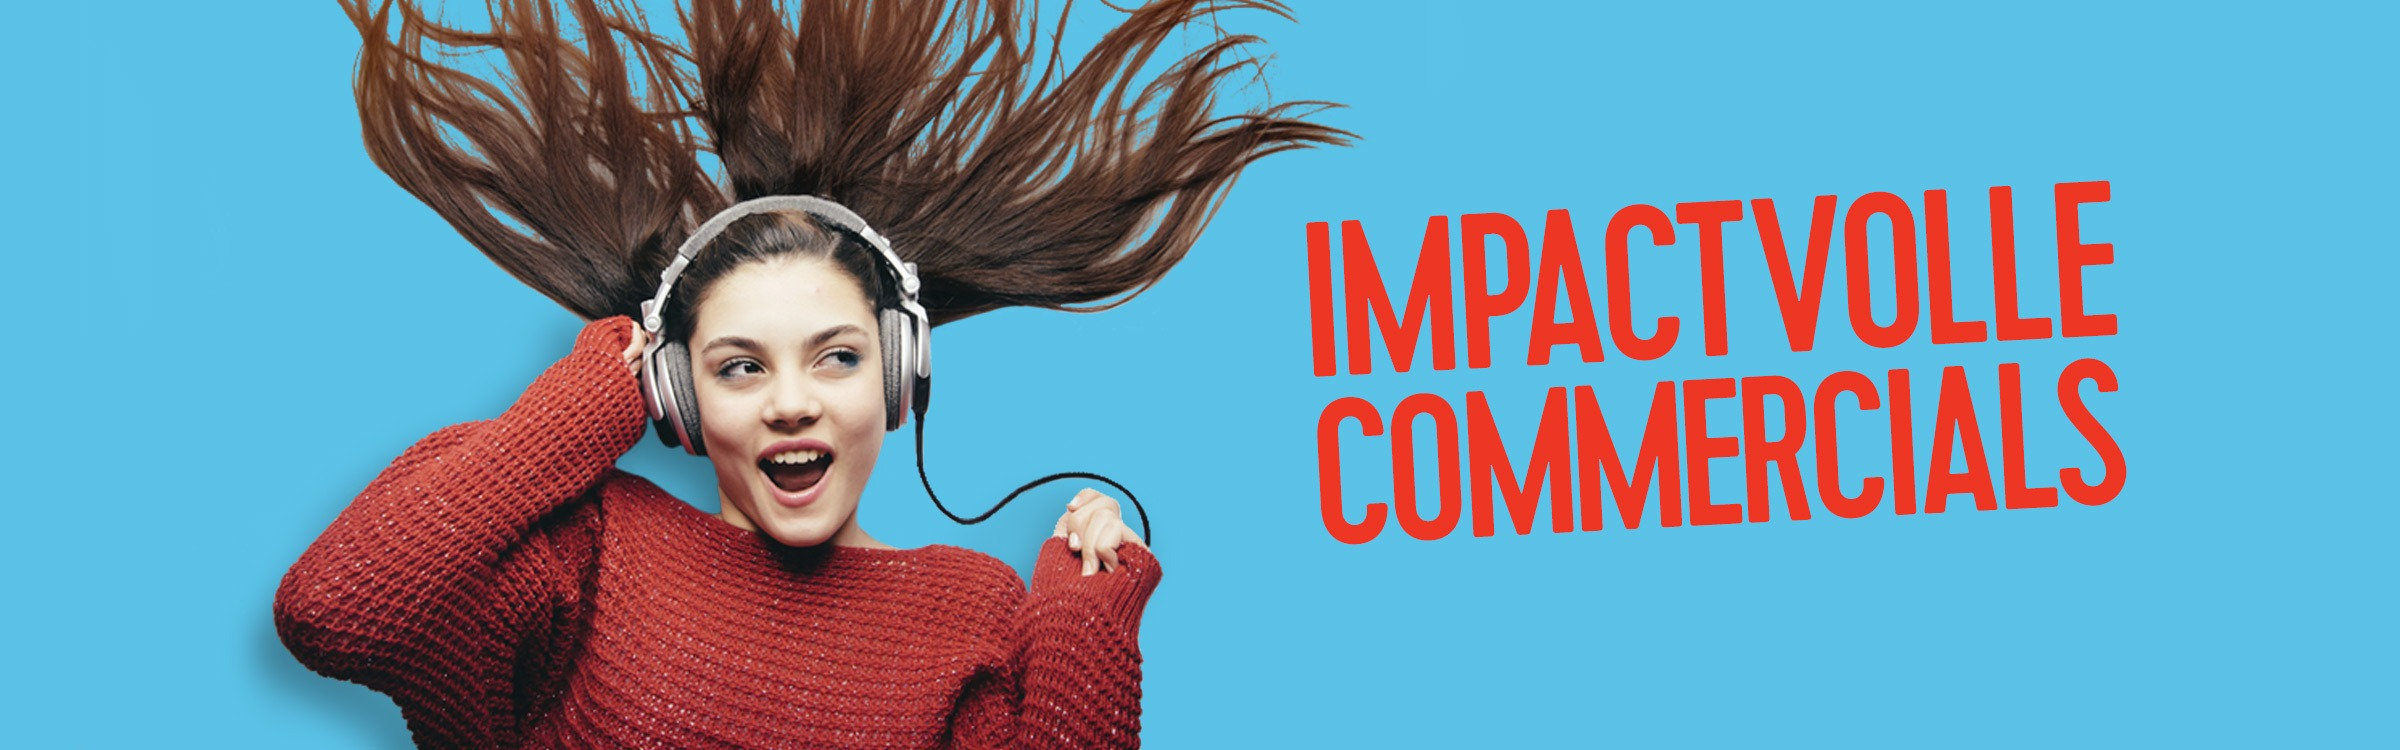 Qmusic actionheader sales2018 impactcomm